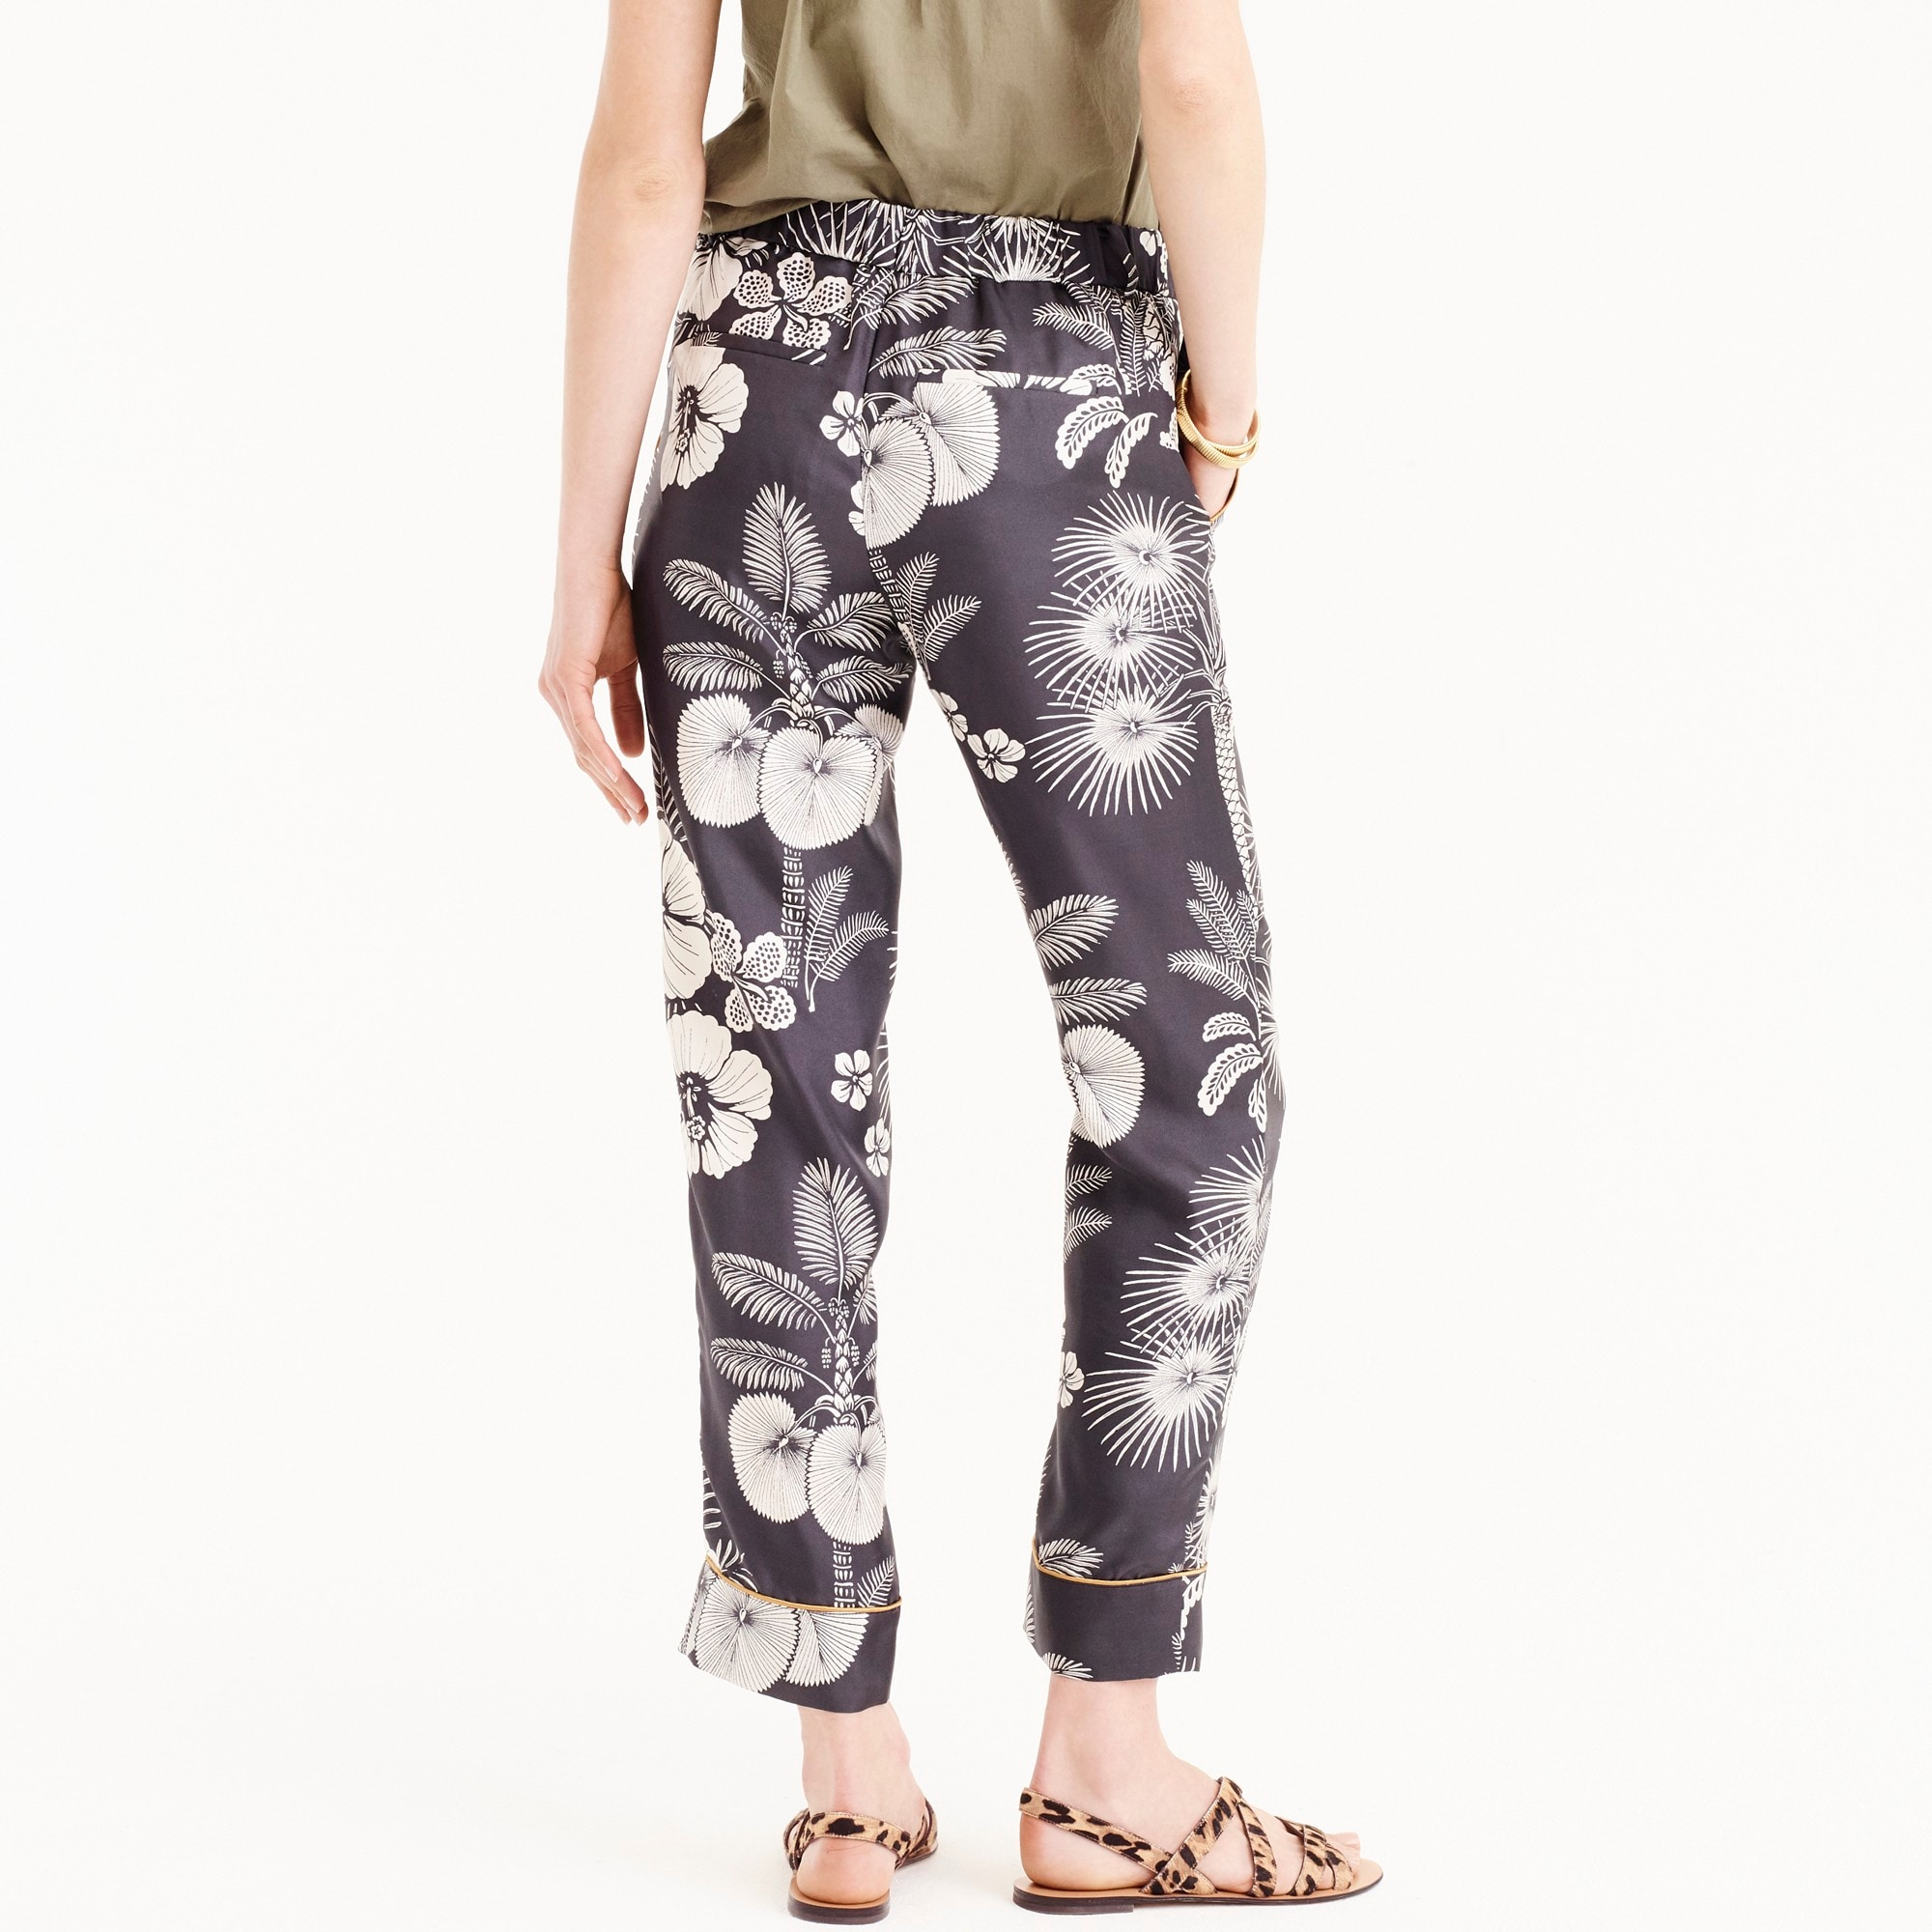 Image 3 for Tall pull-on easy pant in floral-printed silk twill